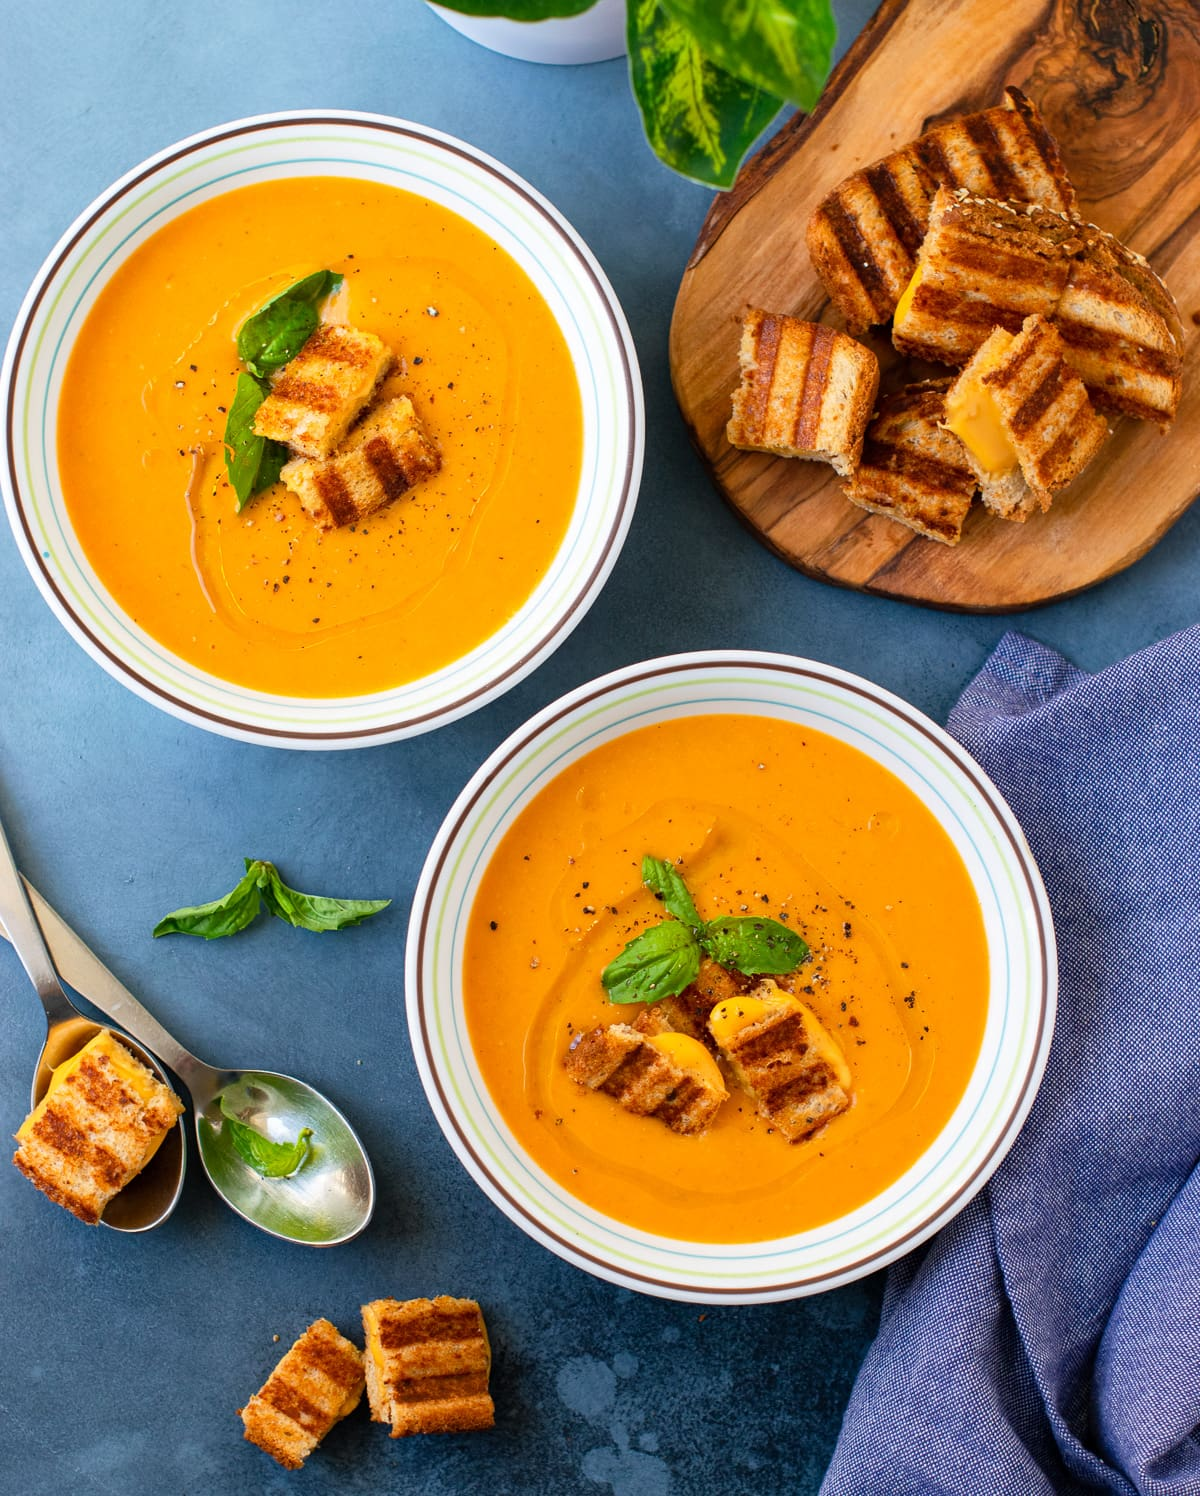 Hearty Oatmeal Vegetable Soup bowls served with grilled cheese